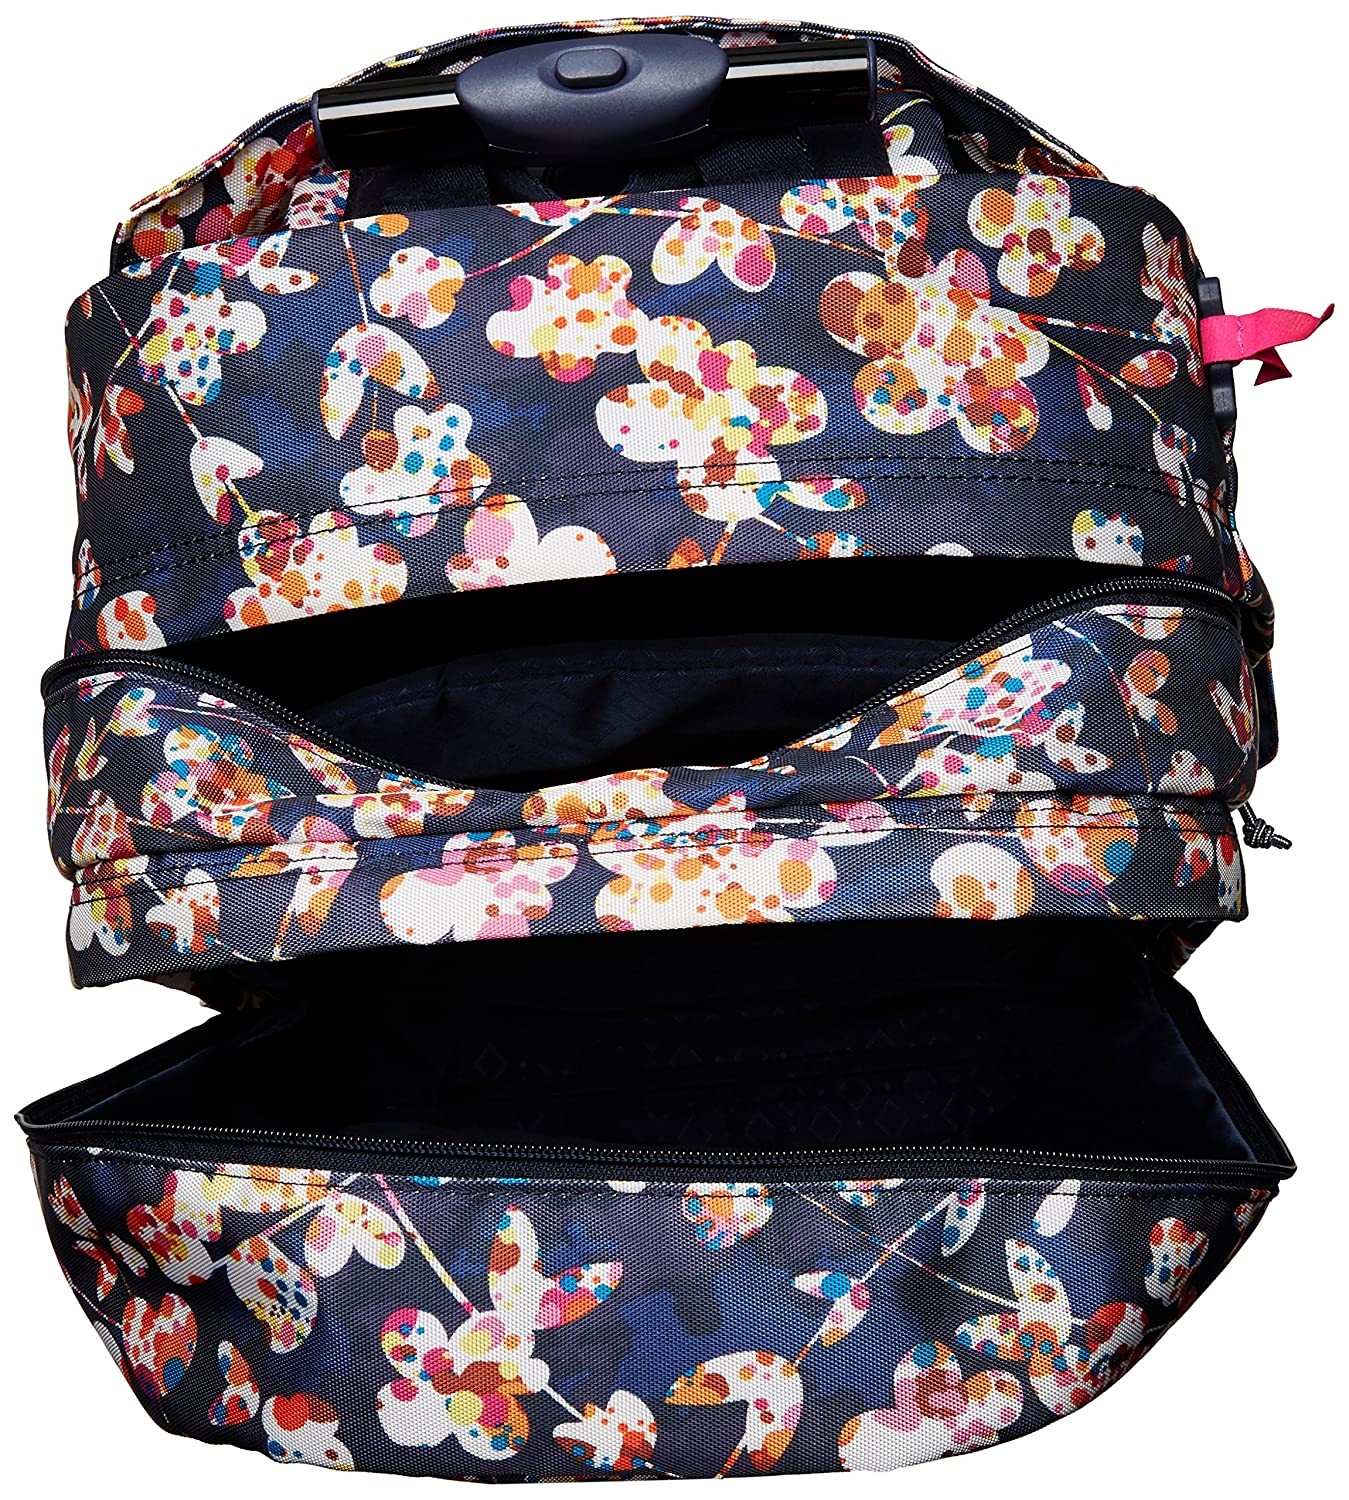 Amazon.com: vera bradley Lighten Up mochila grande con ...